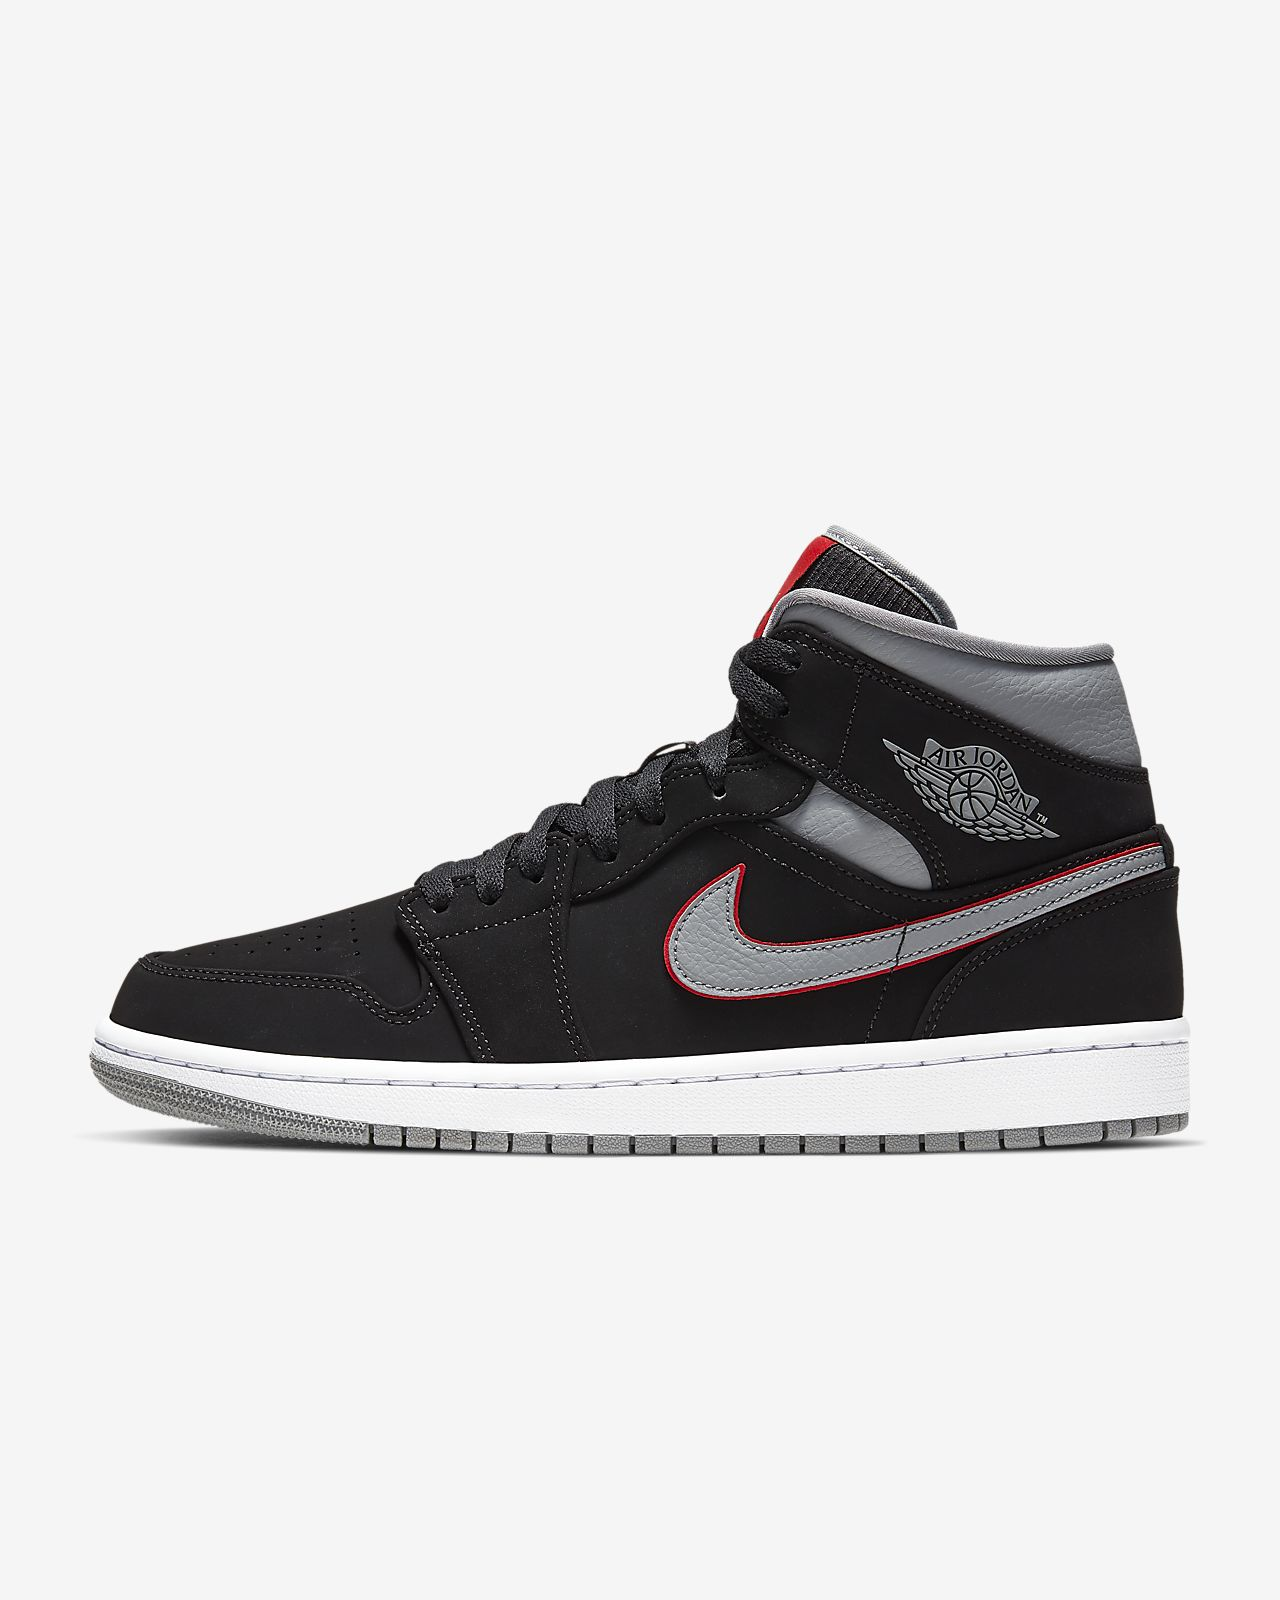 927c8da794e Air Jordan 1 Mid Men's Shoe. Nike.com AU